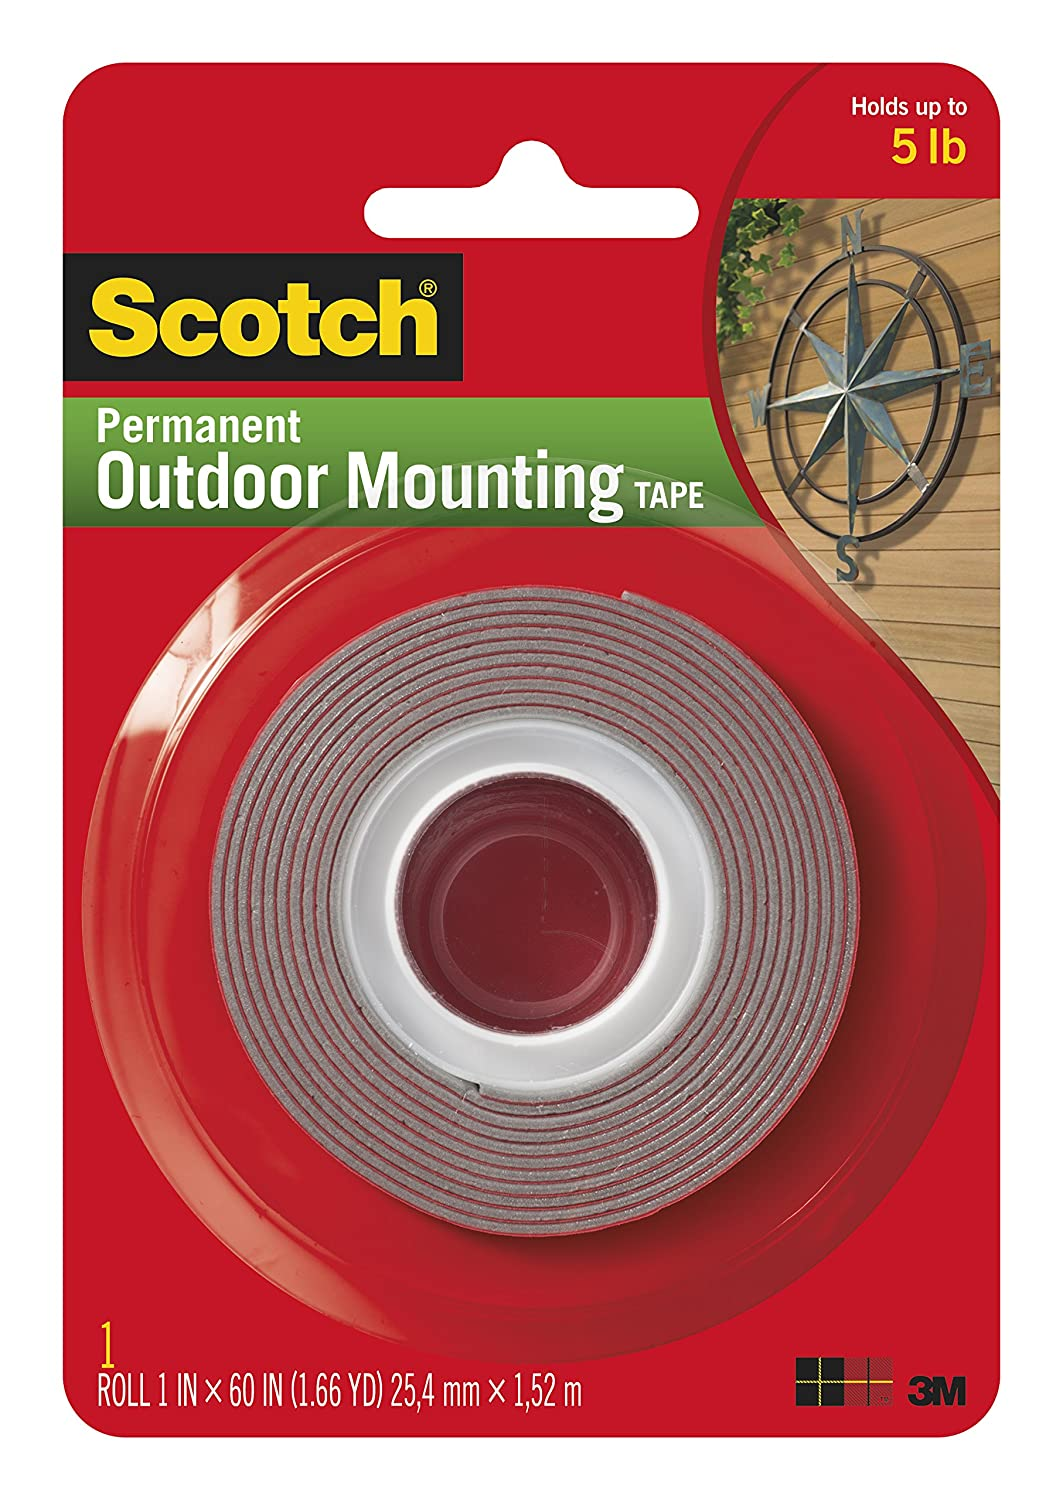 3M Scotch 4011 Permanent Outdoor Mounting Tape: 1 in. x 60 in. (Grey) 3M/COMMERCIAL TAPE DIV.